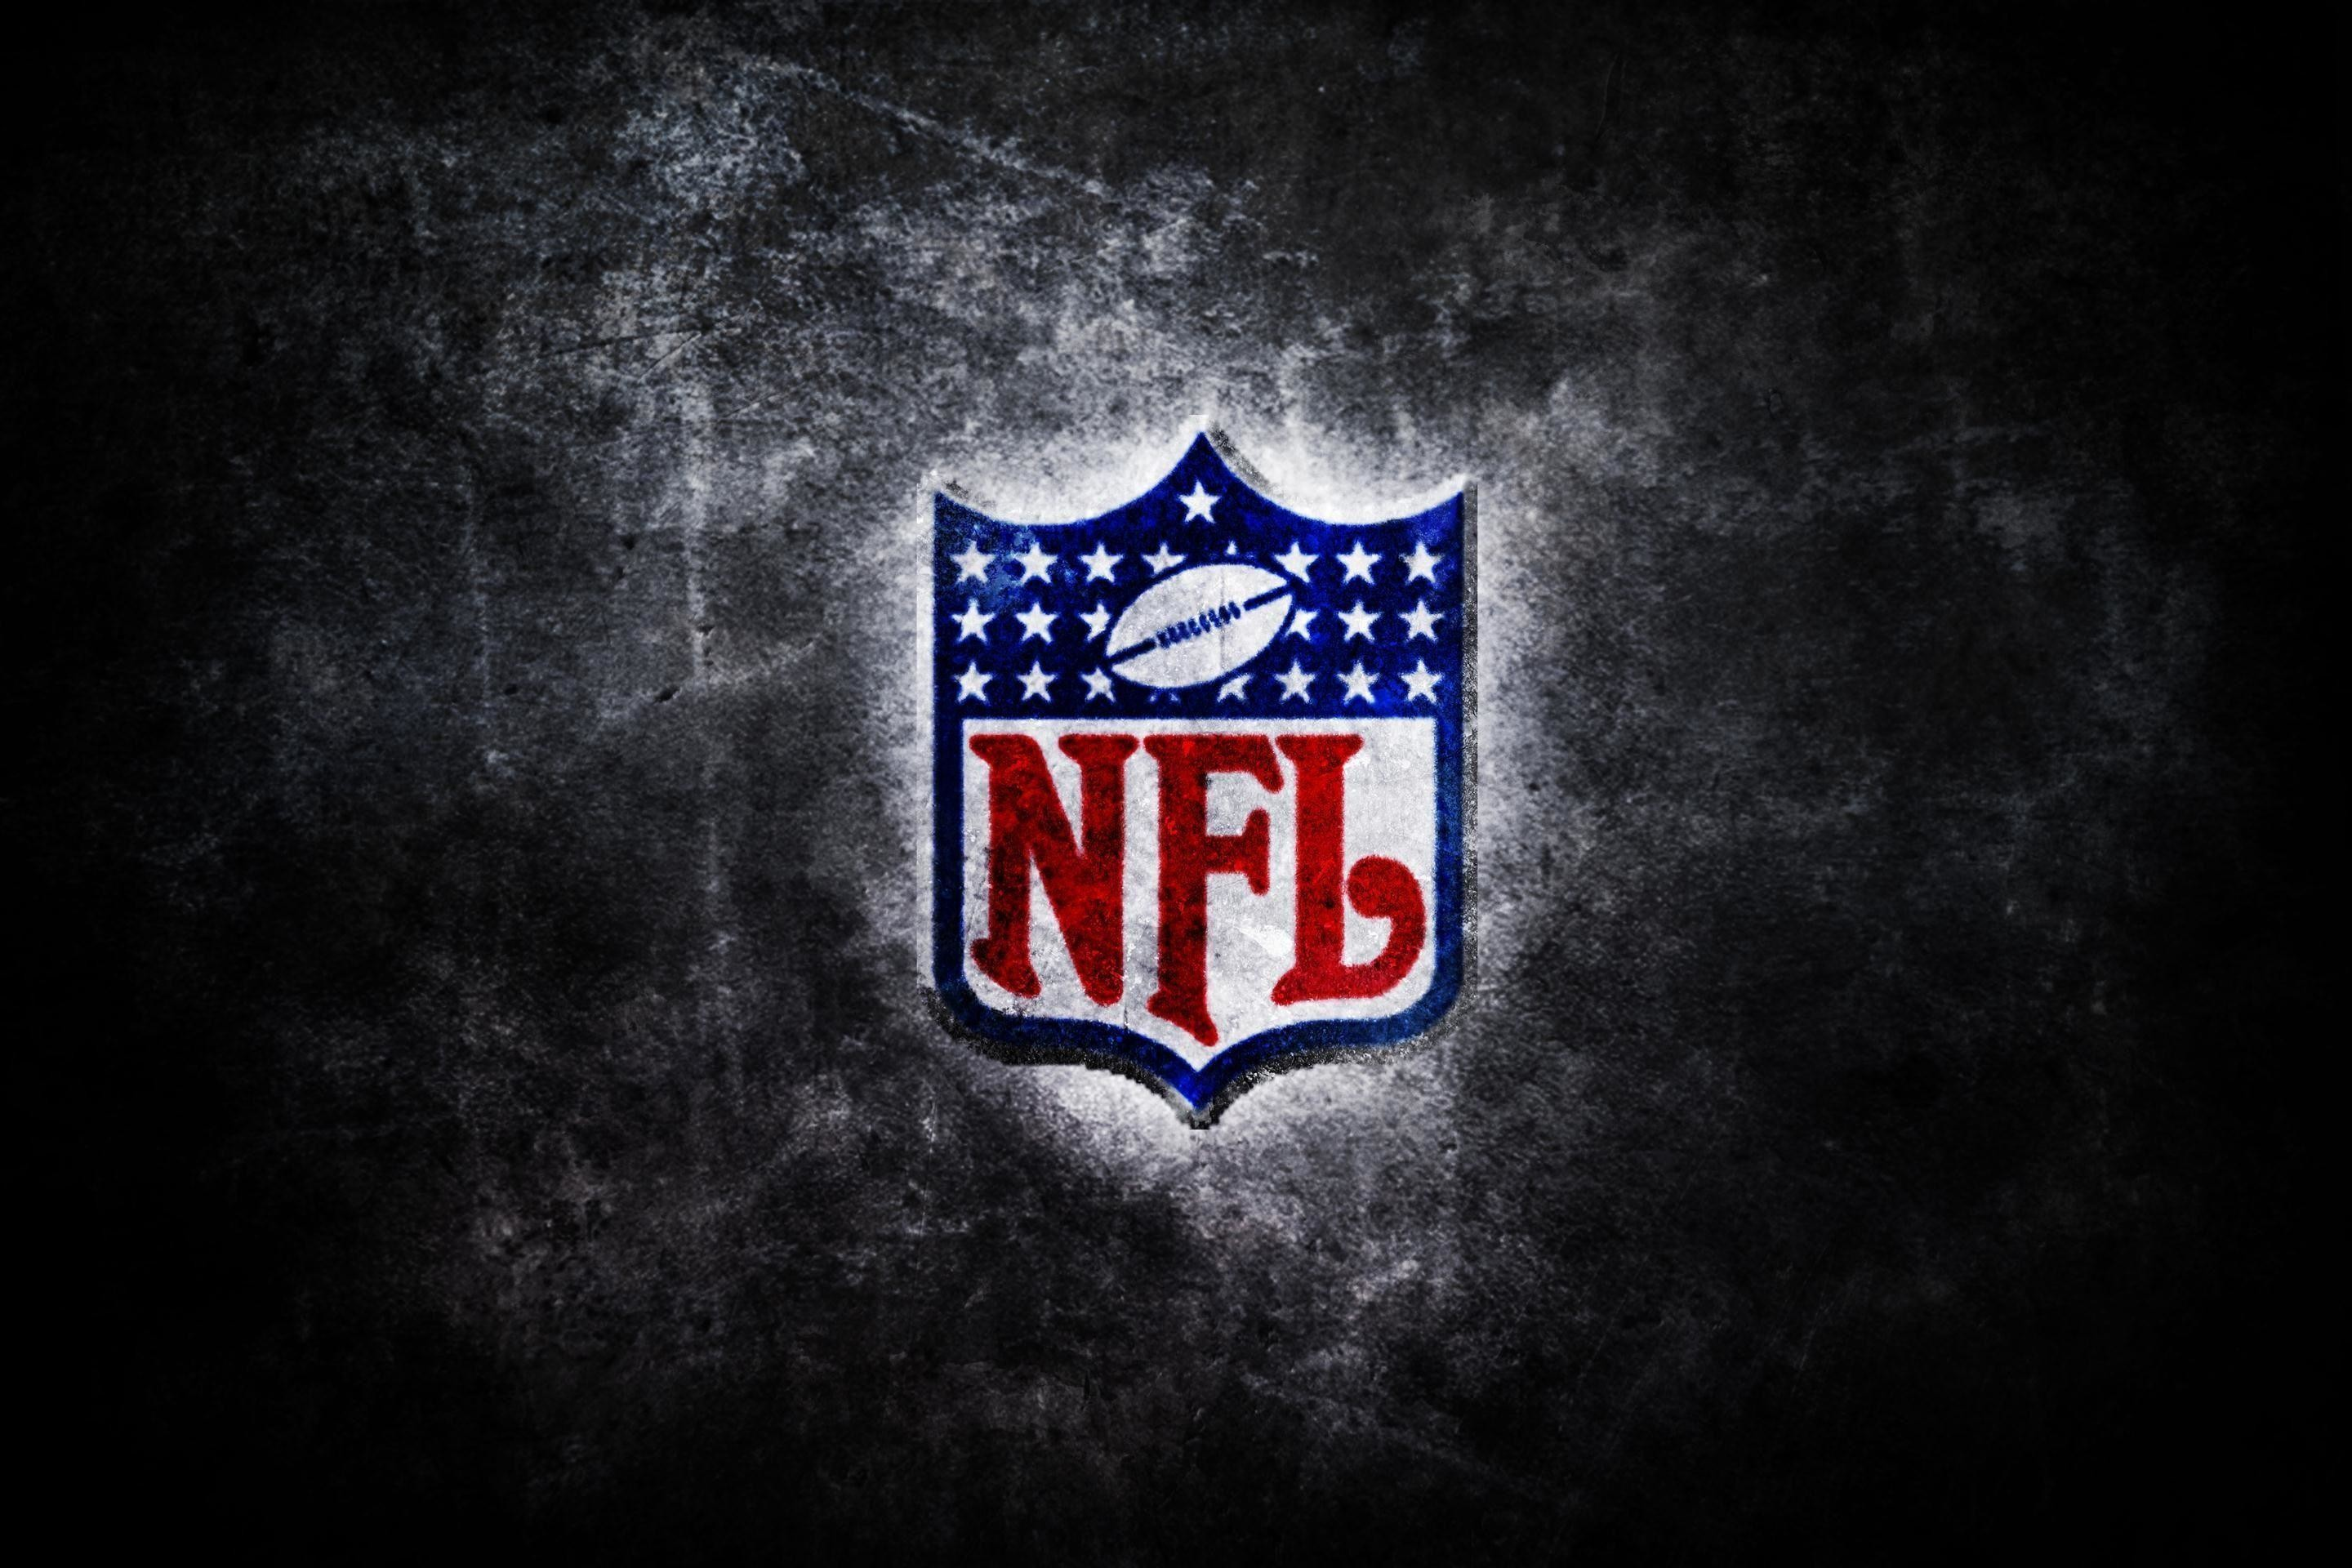 2880x1920 50+ NFL HD Wallpapers 2014